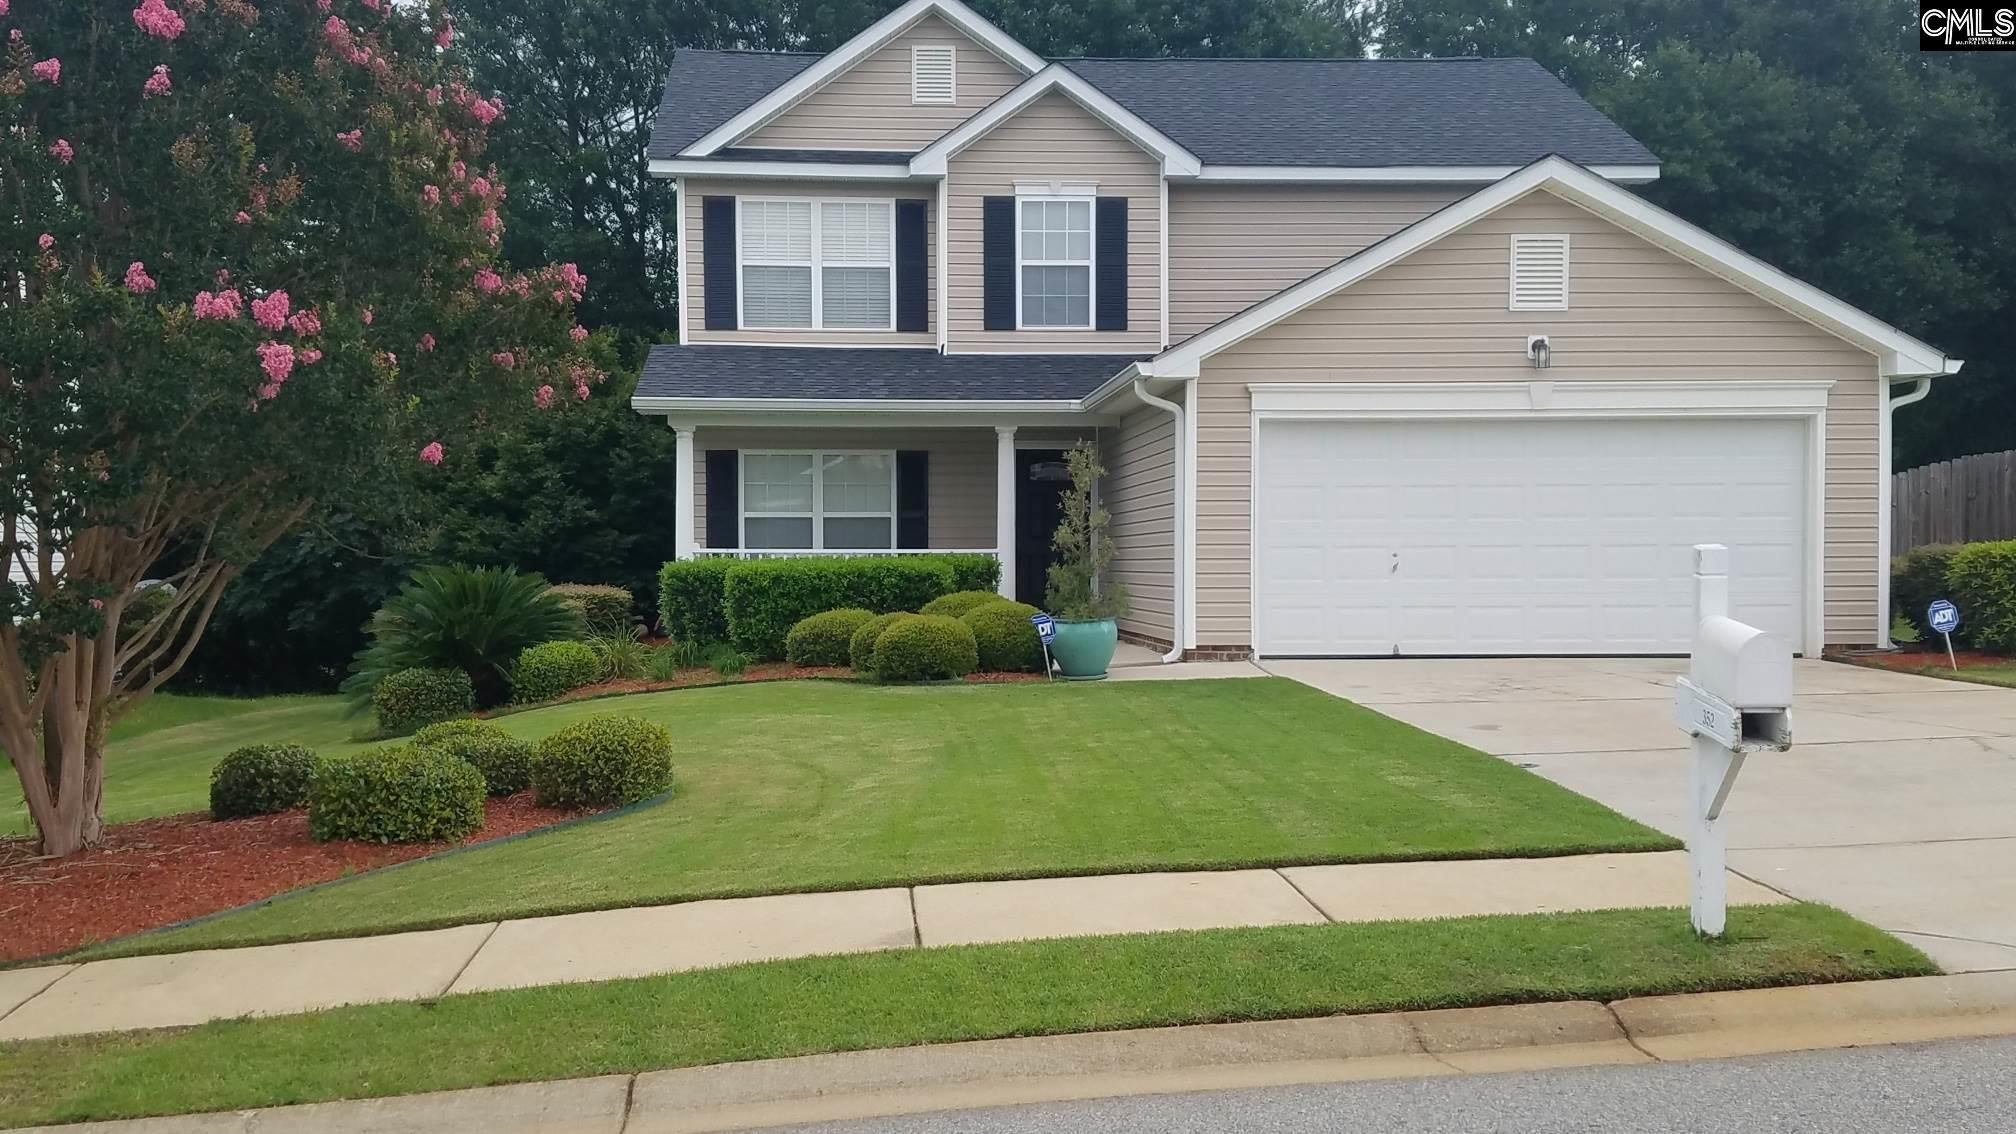 352 Farming Creek Lexington, SC 29072